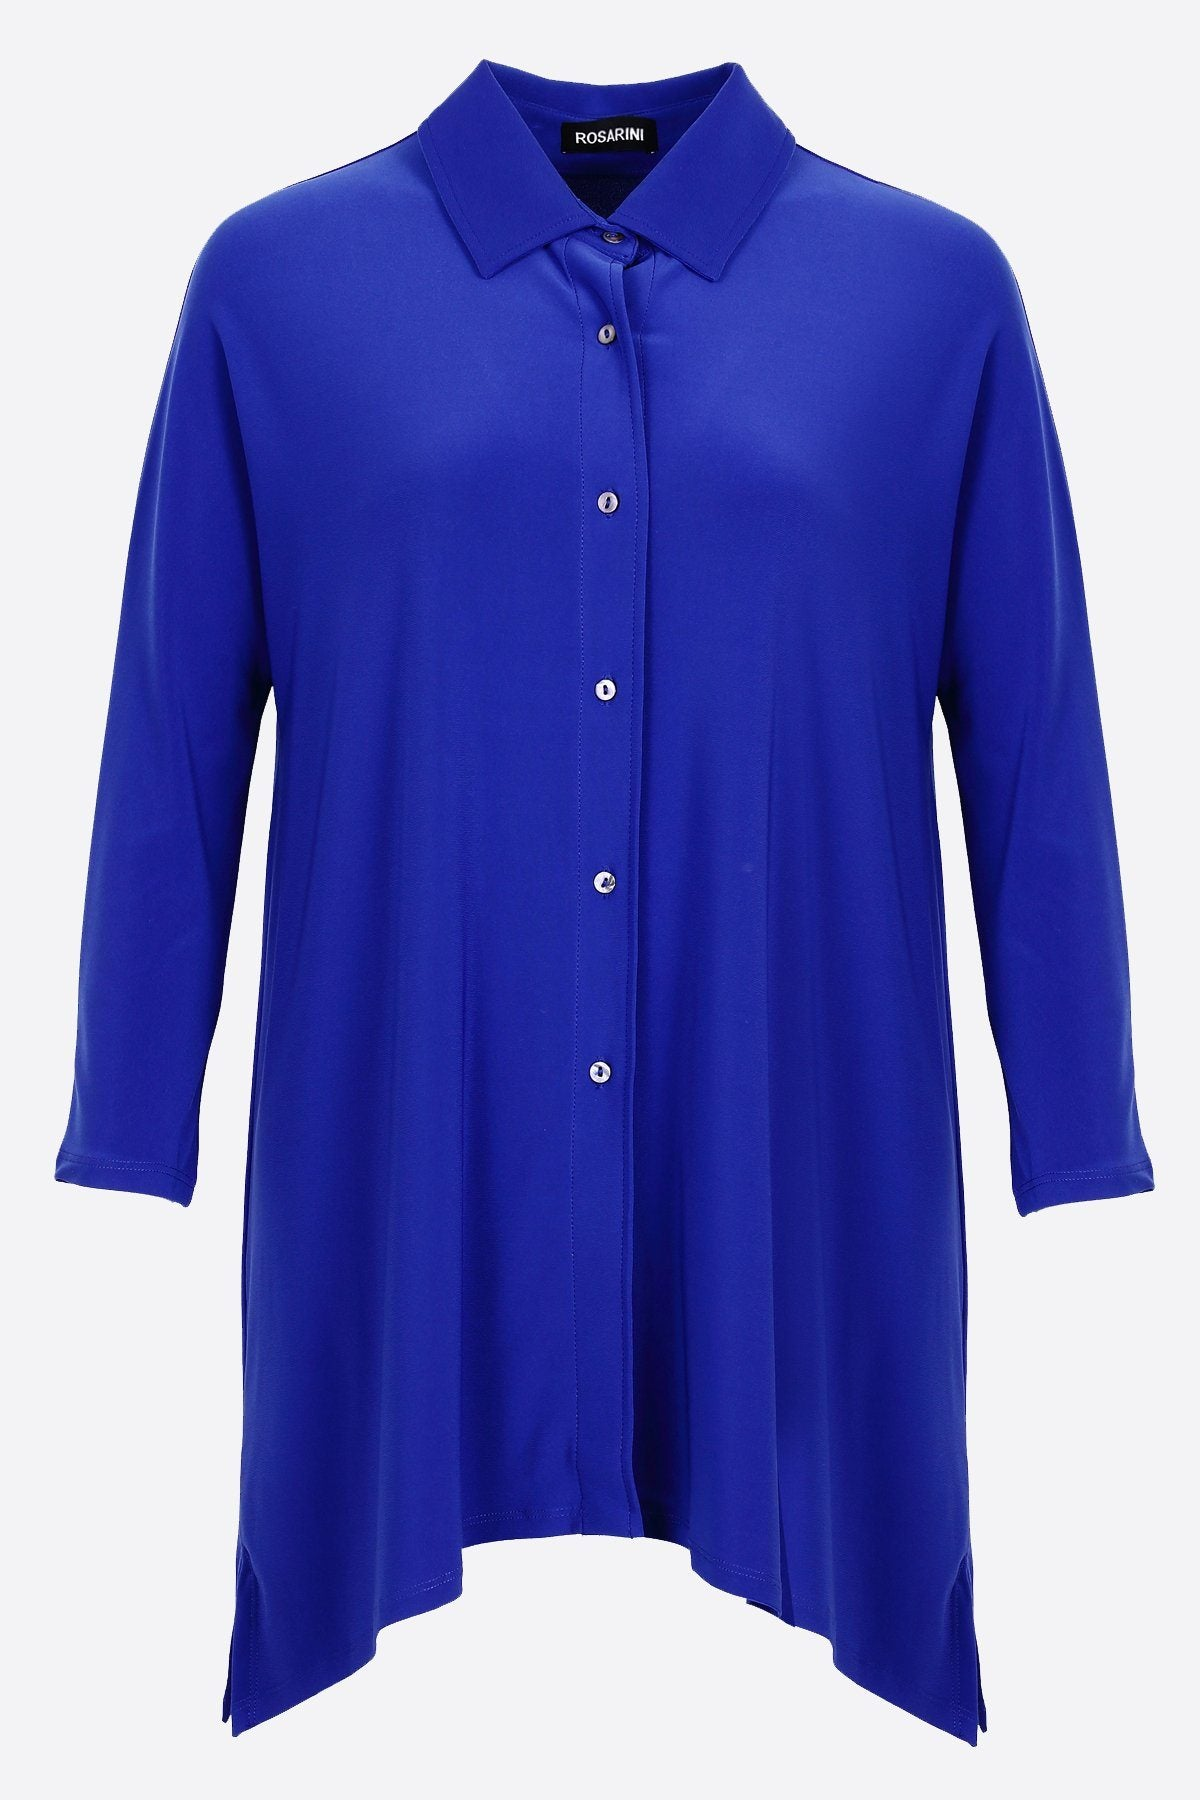 Women's Blue Button Shirt with Curved Hem 3/4 Sleeves Travel Shirt Rosarini